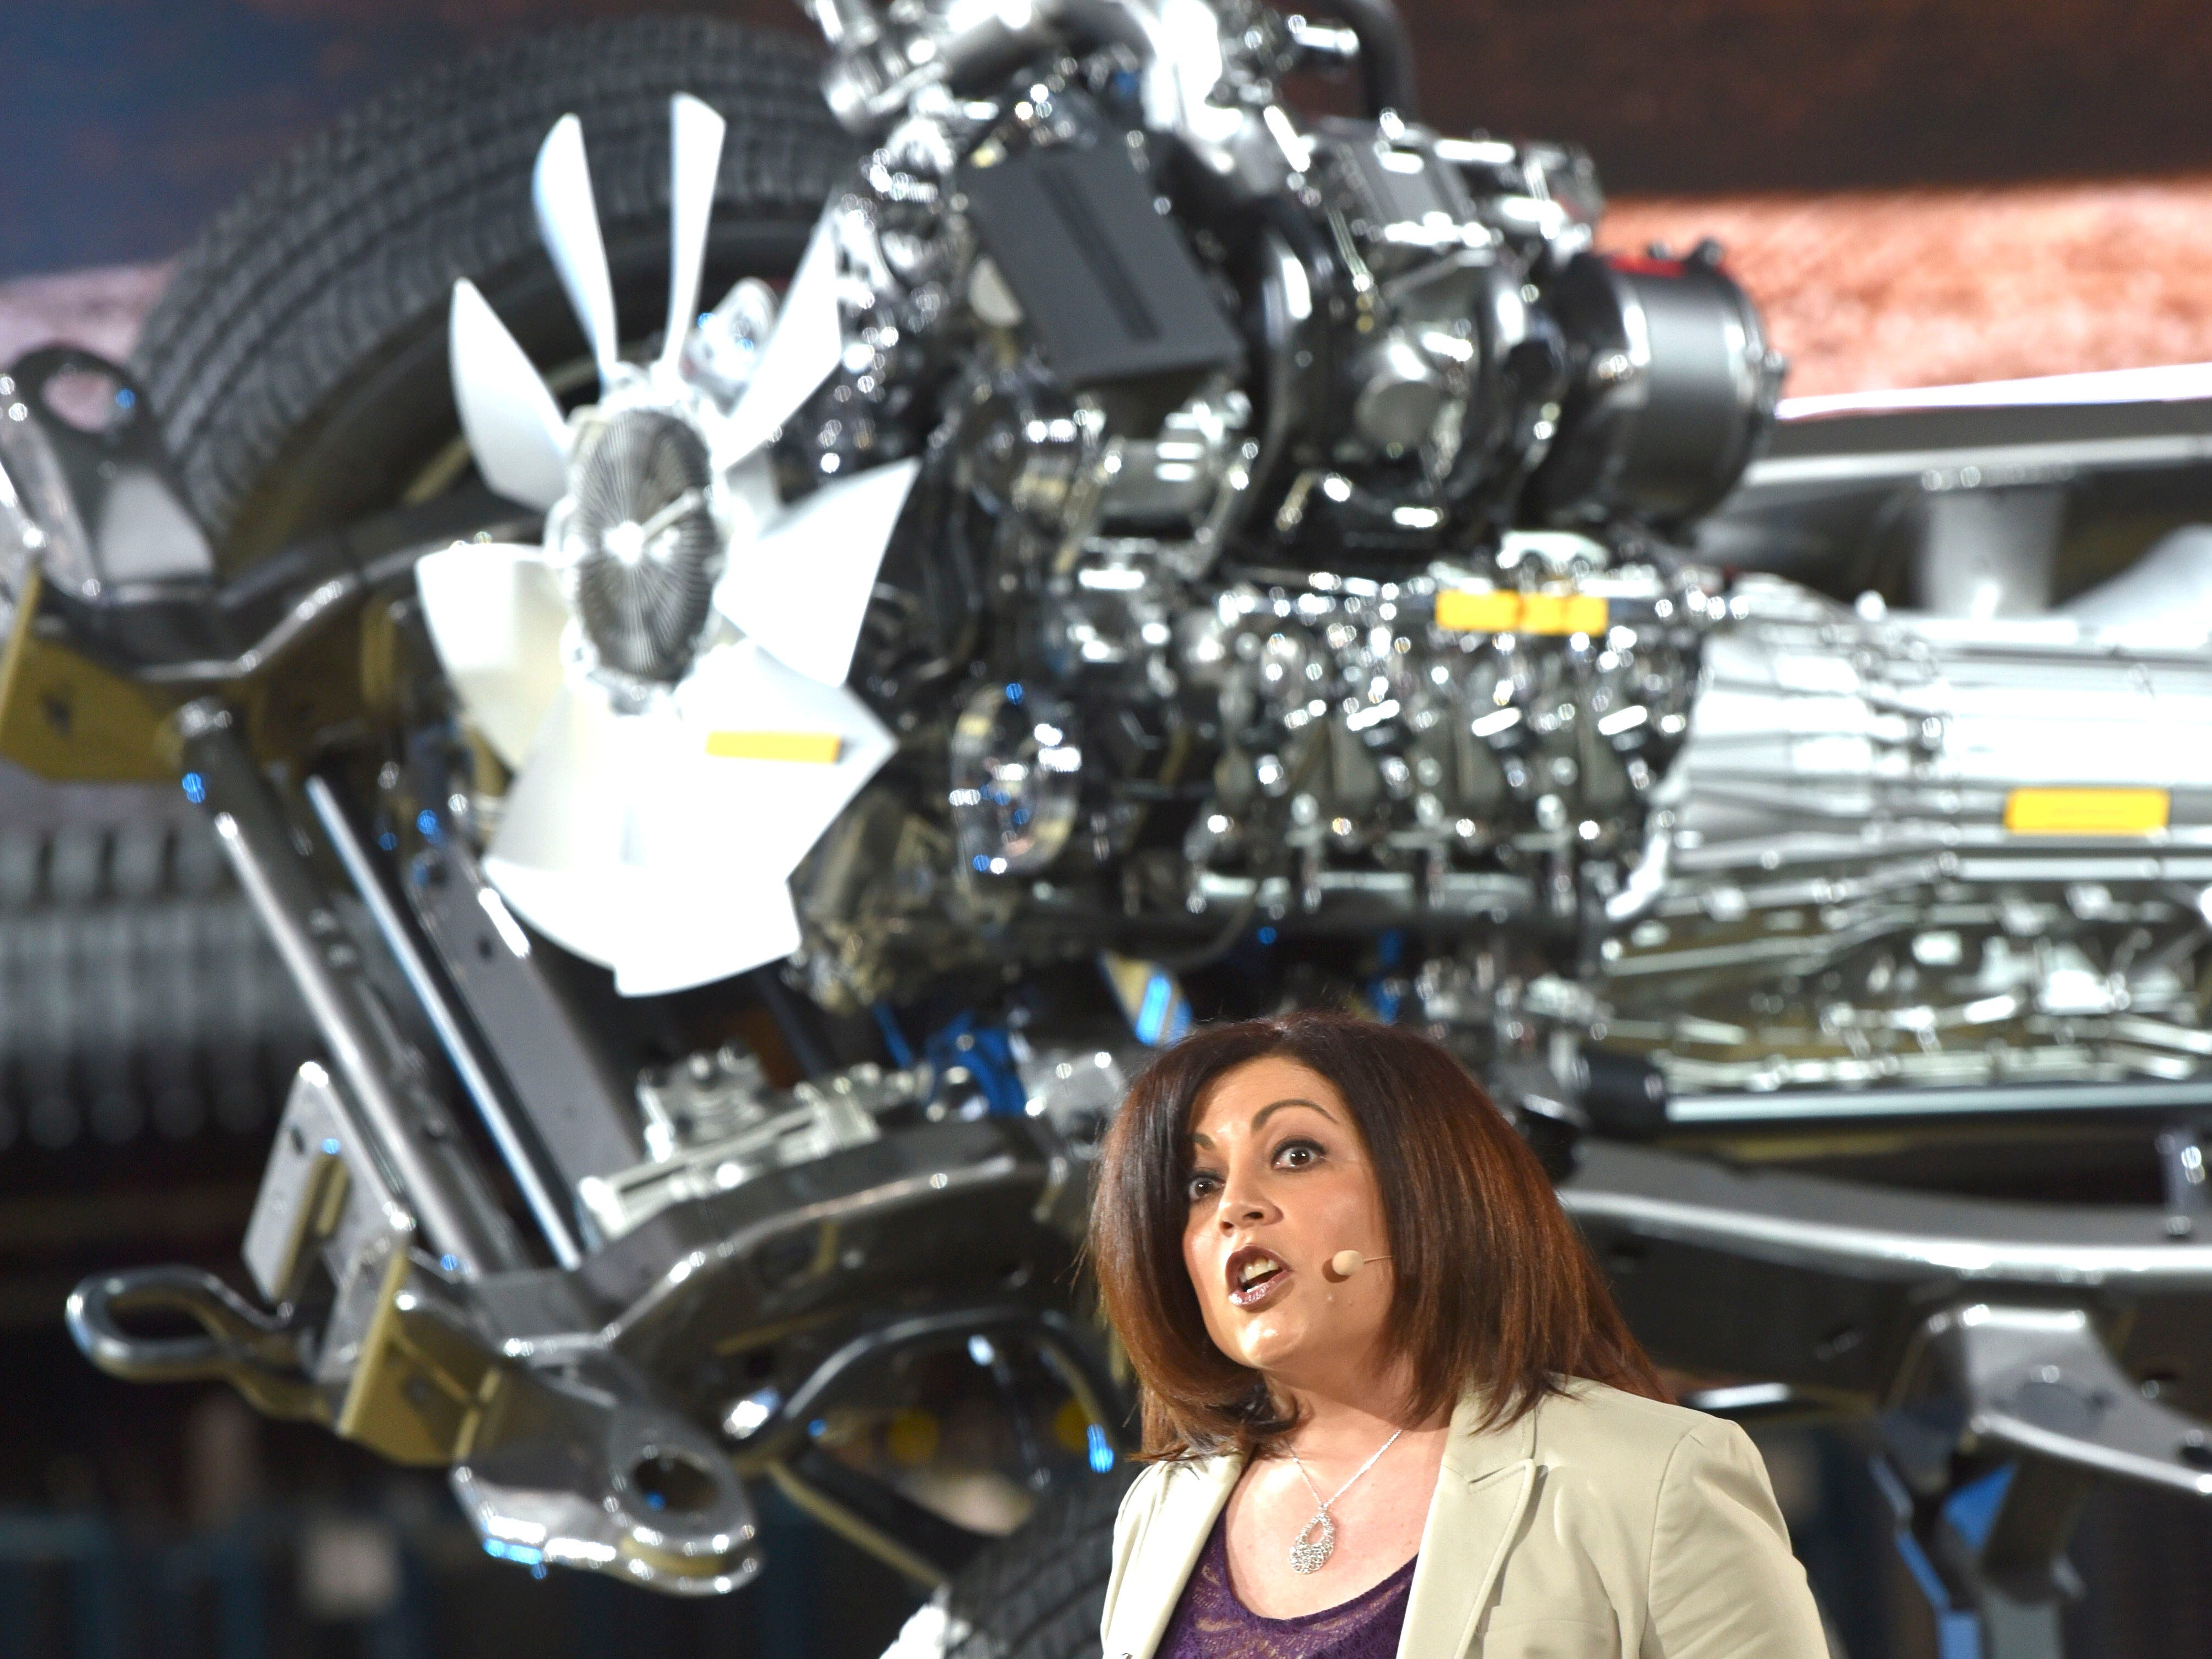 Jaclyn McQuaid, Chief Engineer of the Silverado HD, talks in front of an HD rolling chassis.  She said that Chevrolet has strengthened the heavy-duty trucks' axles, locking rear-differential, prop shaft and u-joint to allow the truck to use all 910-pounds-feet of torque in first gear.